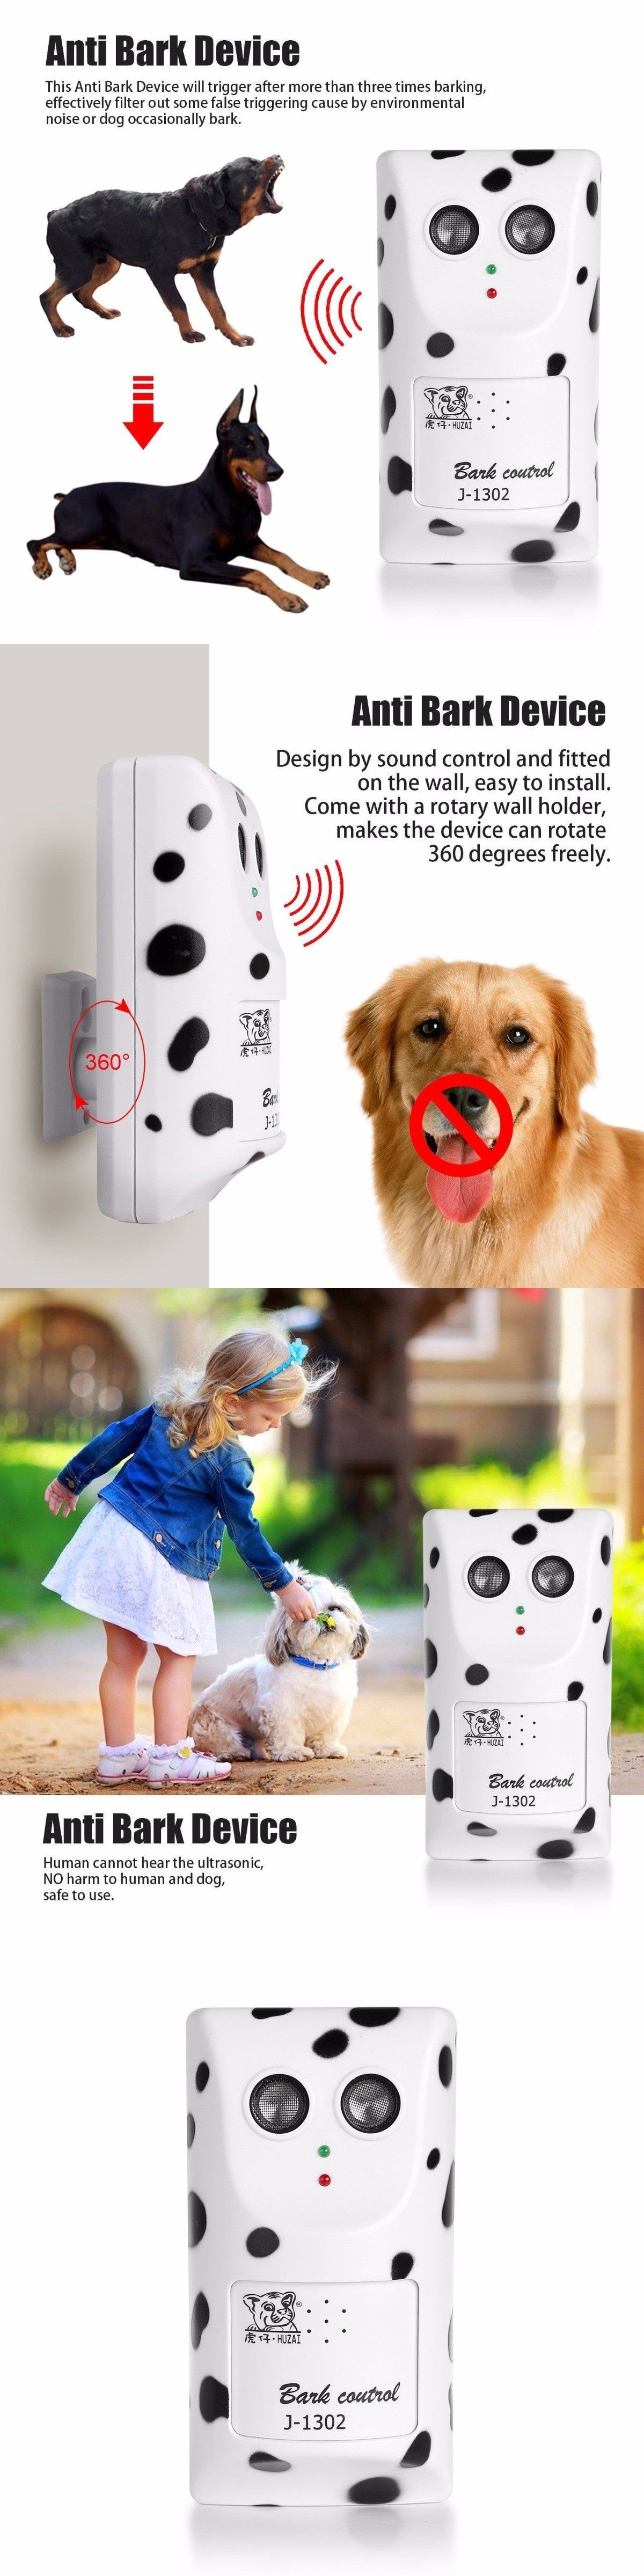 Sonic Trainers 146244 Humanely Ultrasonic Stop Control Dog